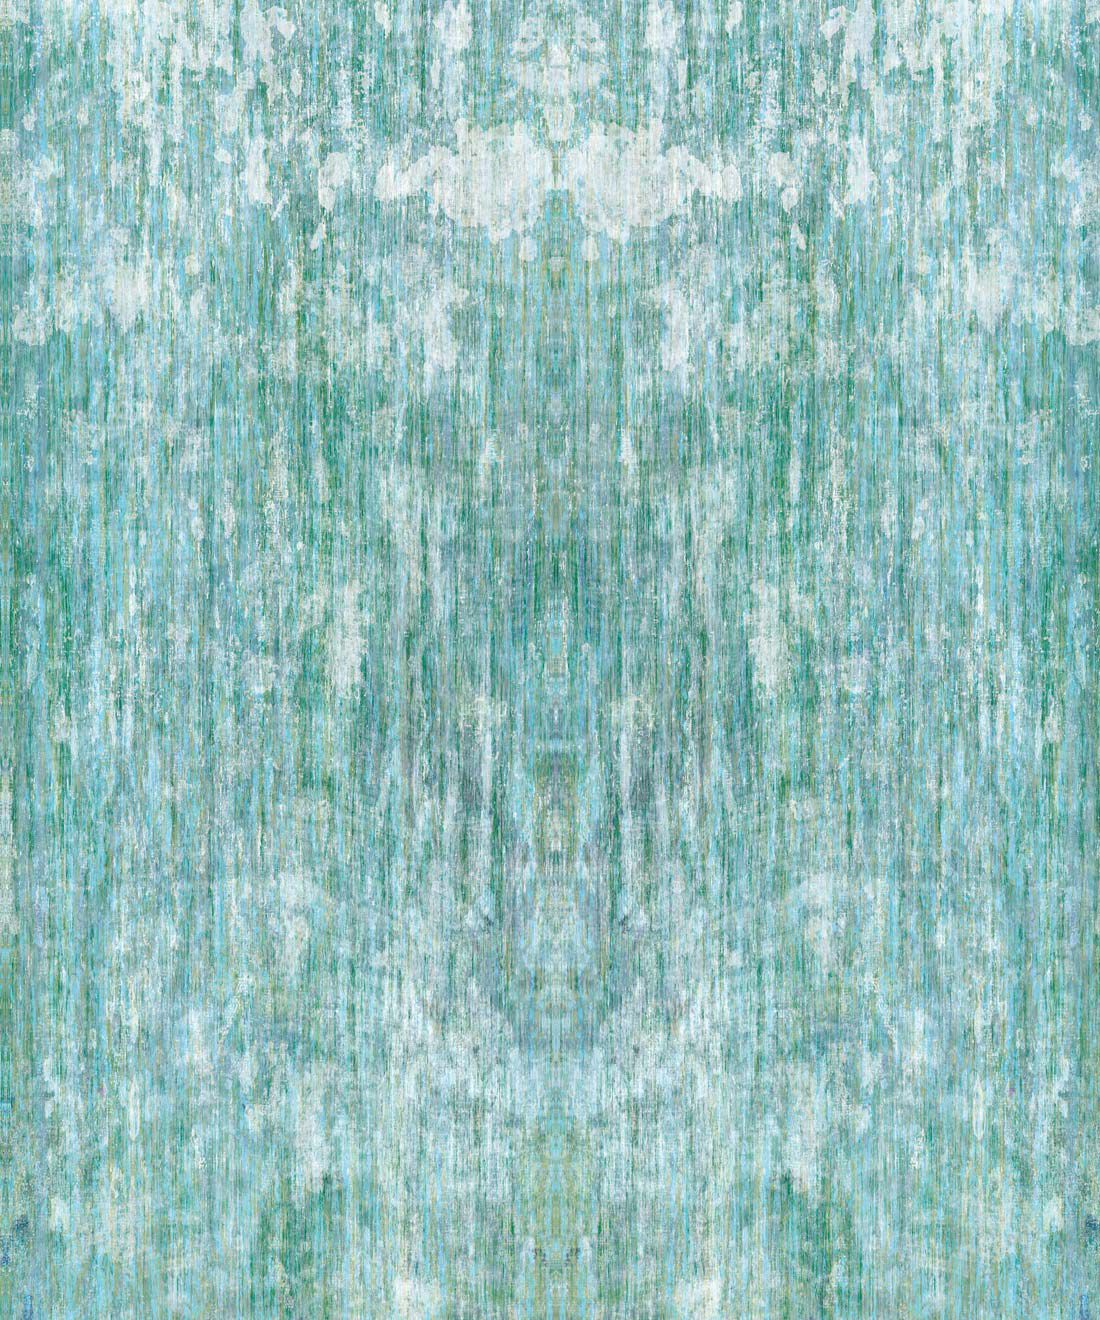 Patina Wallpaper by Simcox • Color sky • Abstract Wallpaper • swatch